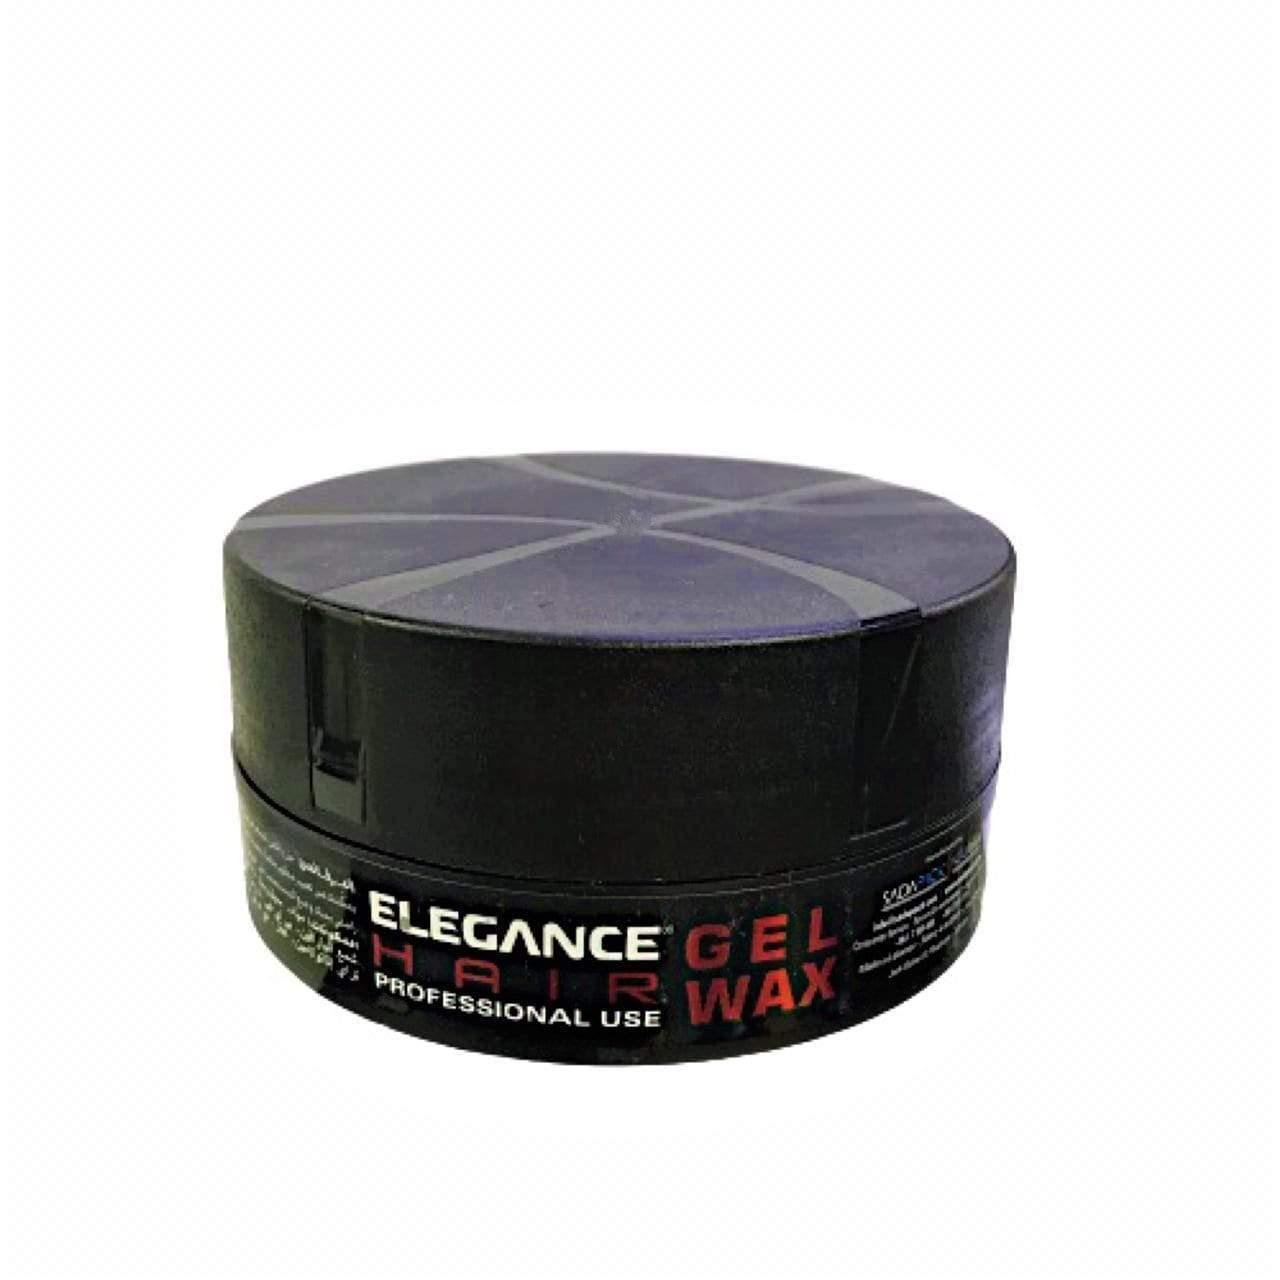 Gel wax, Hair wax, Hair gel, Hair styling, Hair styler